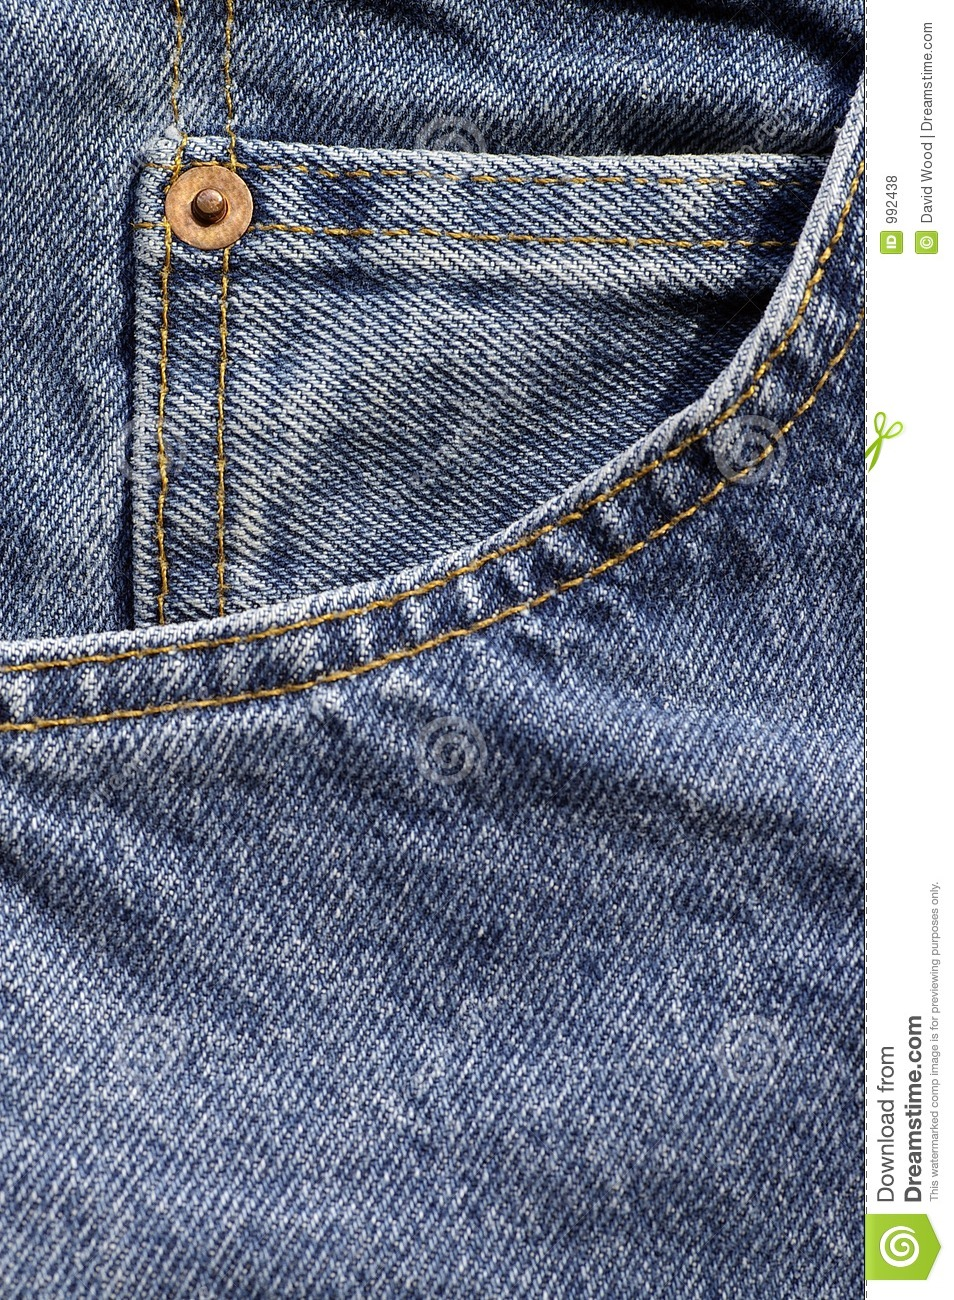 Hd wallpaper vertical - Denim Blue Jeans Coin Pocket Royalty Free Stock Photos